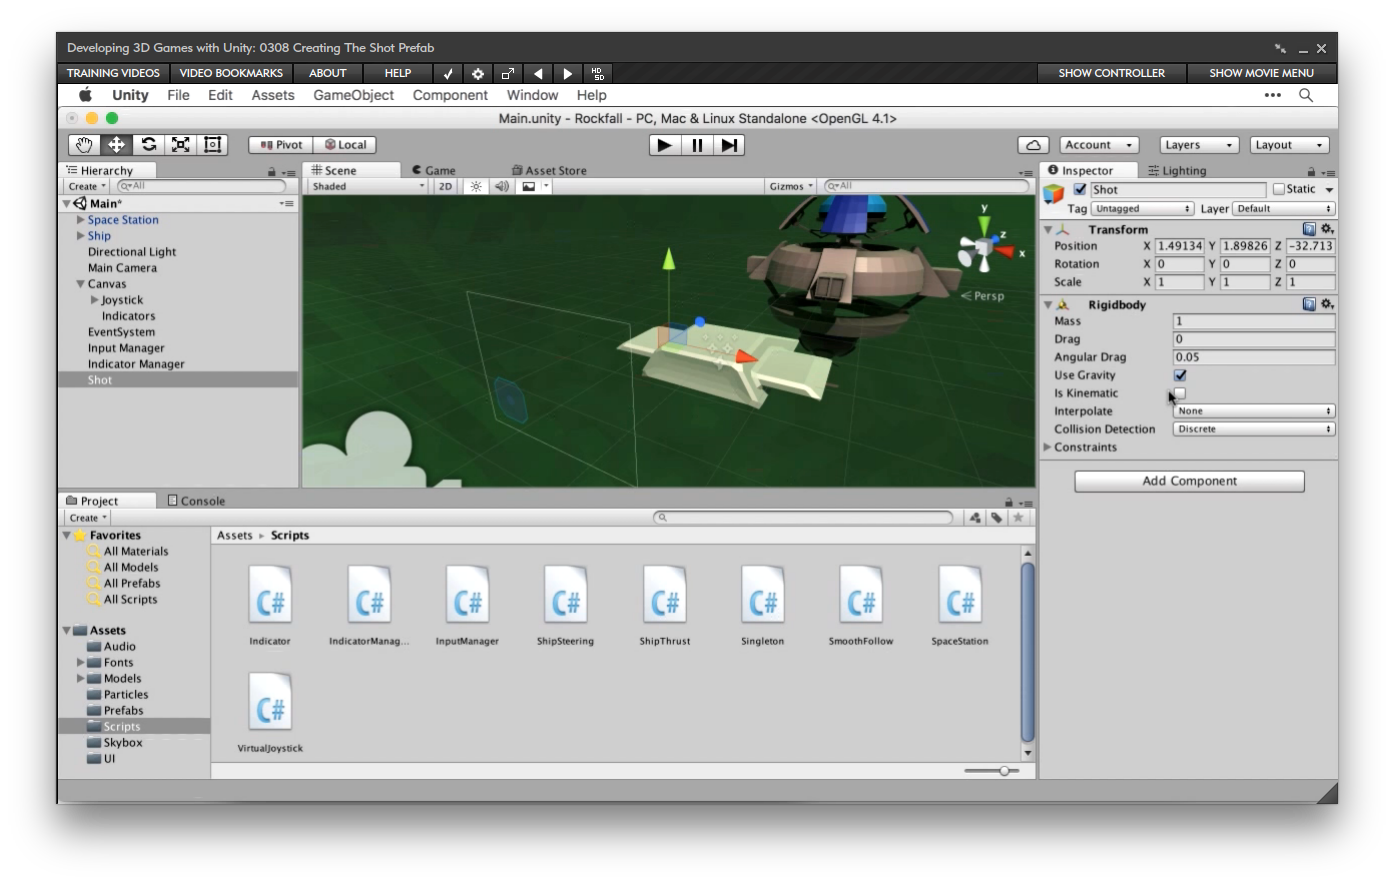 Amazon com: Developing 3D Games with Unity [Online Code